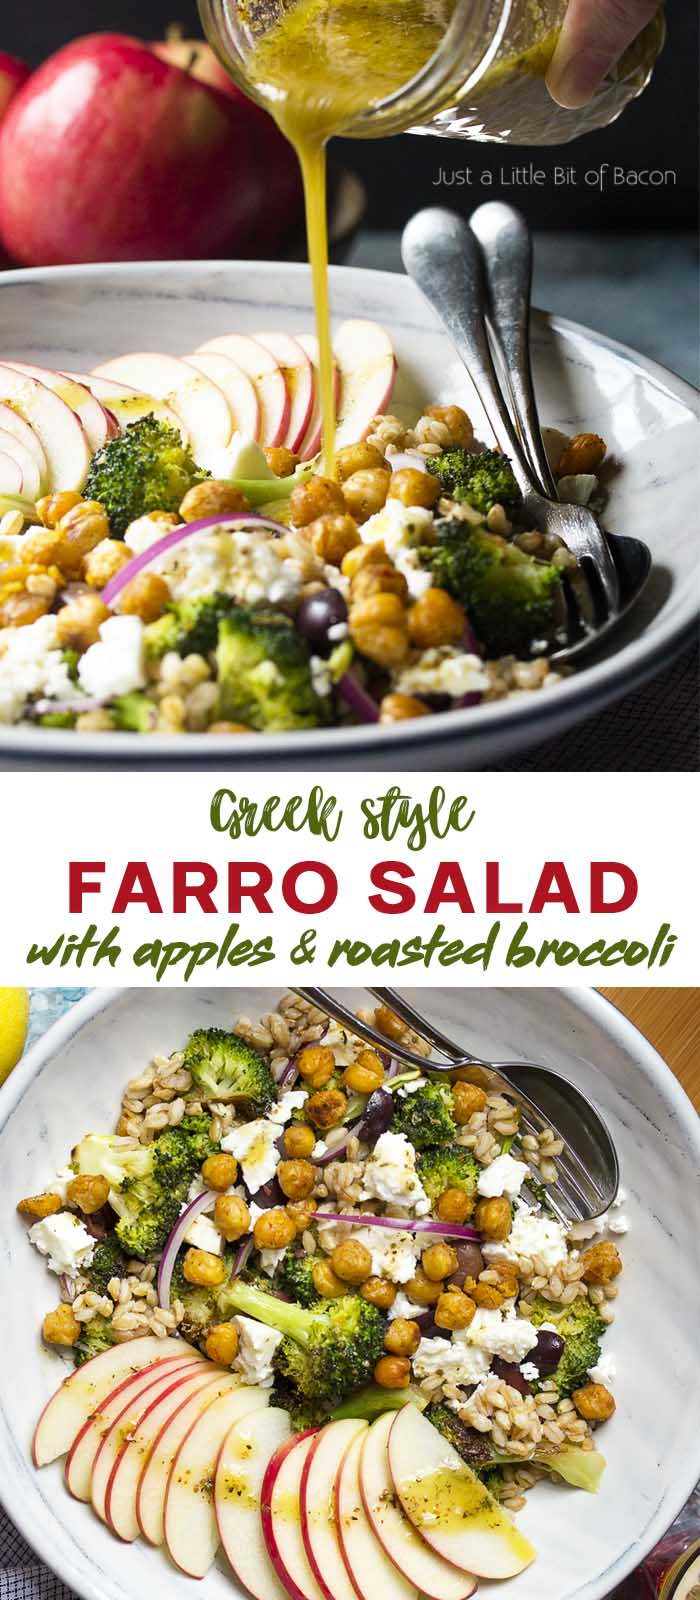 Recipe in a bowl with dressing pouring over and text overlay - Greek Style Farro Salad.